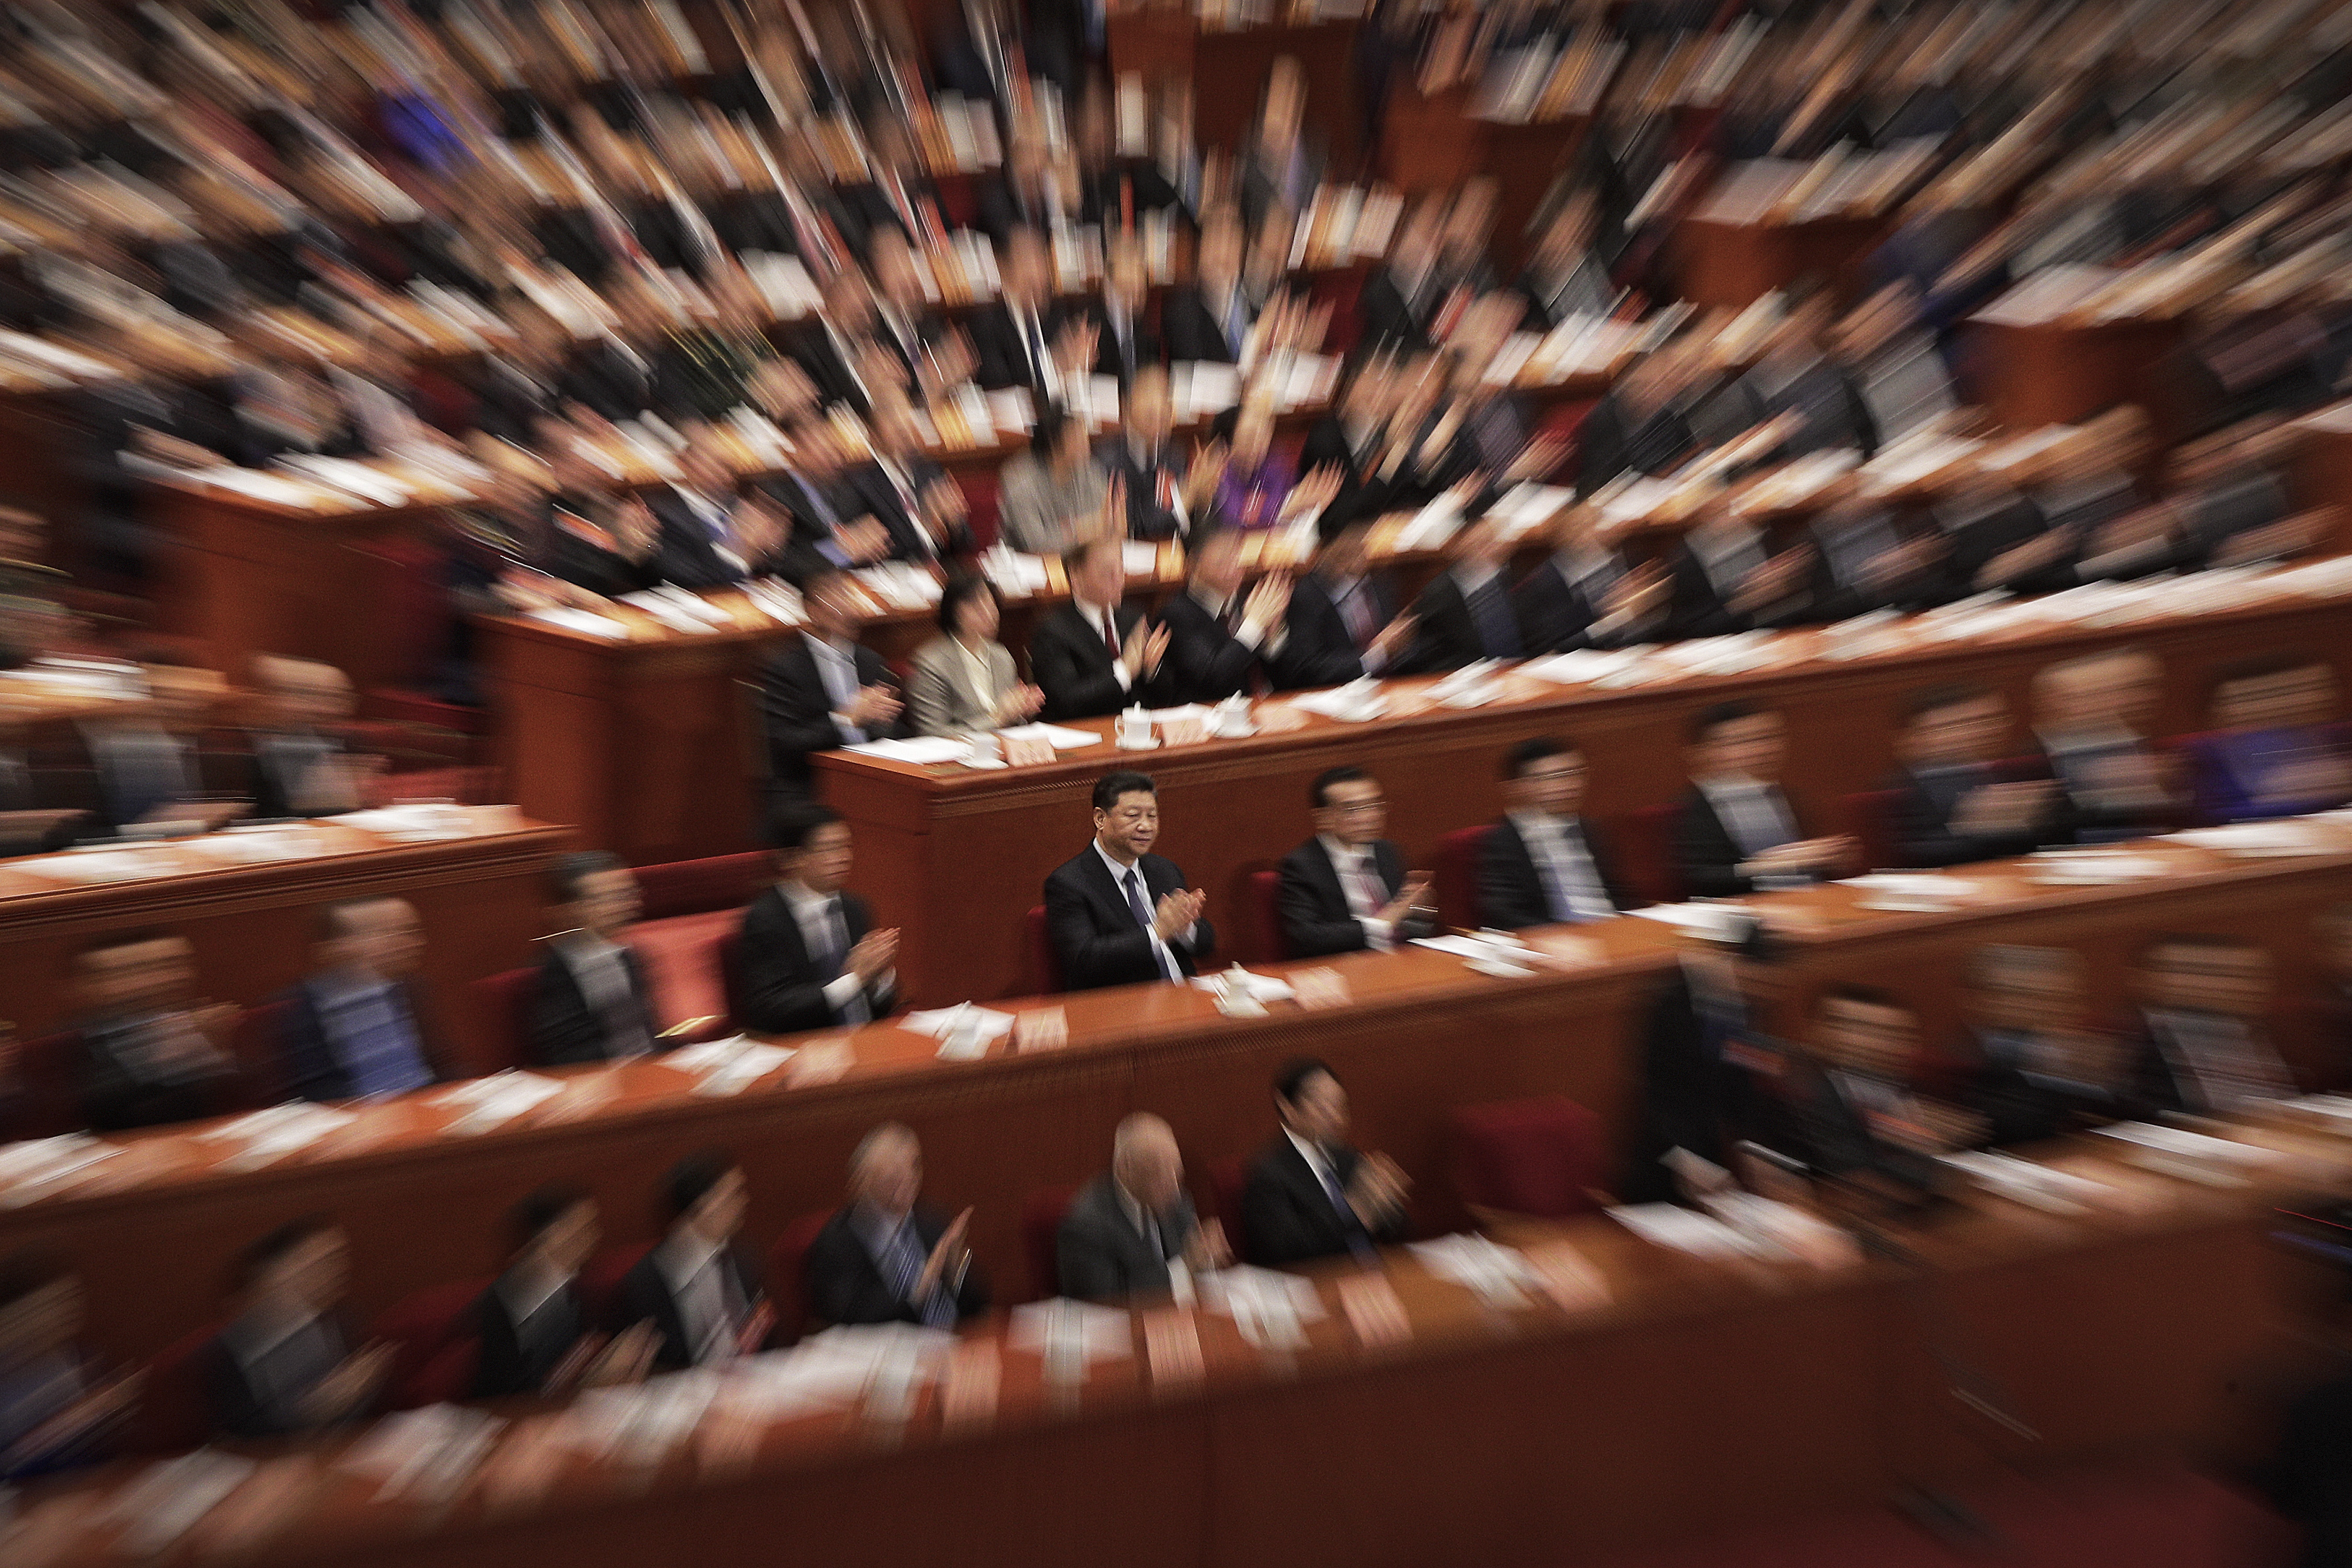 Chinese President Xi Jinping, center, and leaders applaud as Chinese People's Political Consultative Conference (CPPCC) chairman and Politburo Standing Committee member Wang Yang delivers a closing speech for CPPCC at the Great Hall of the People in Beijing, Wednesday, March 13, 2019. (AP Photo/Andy Wong)